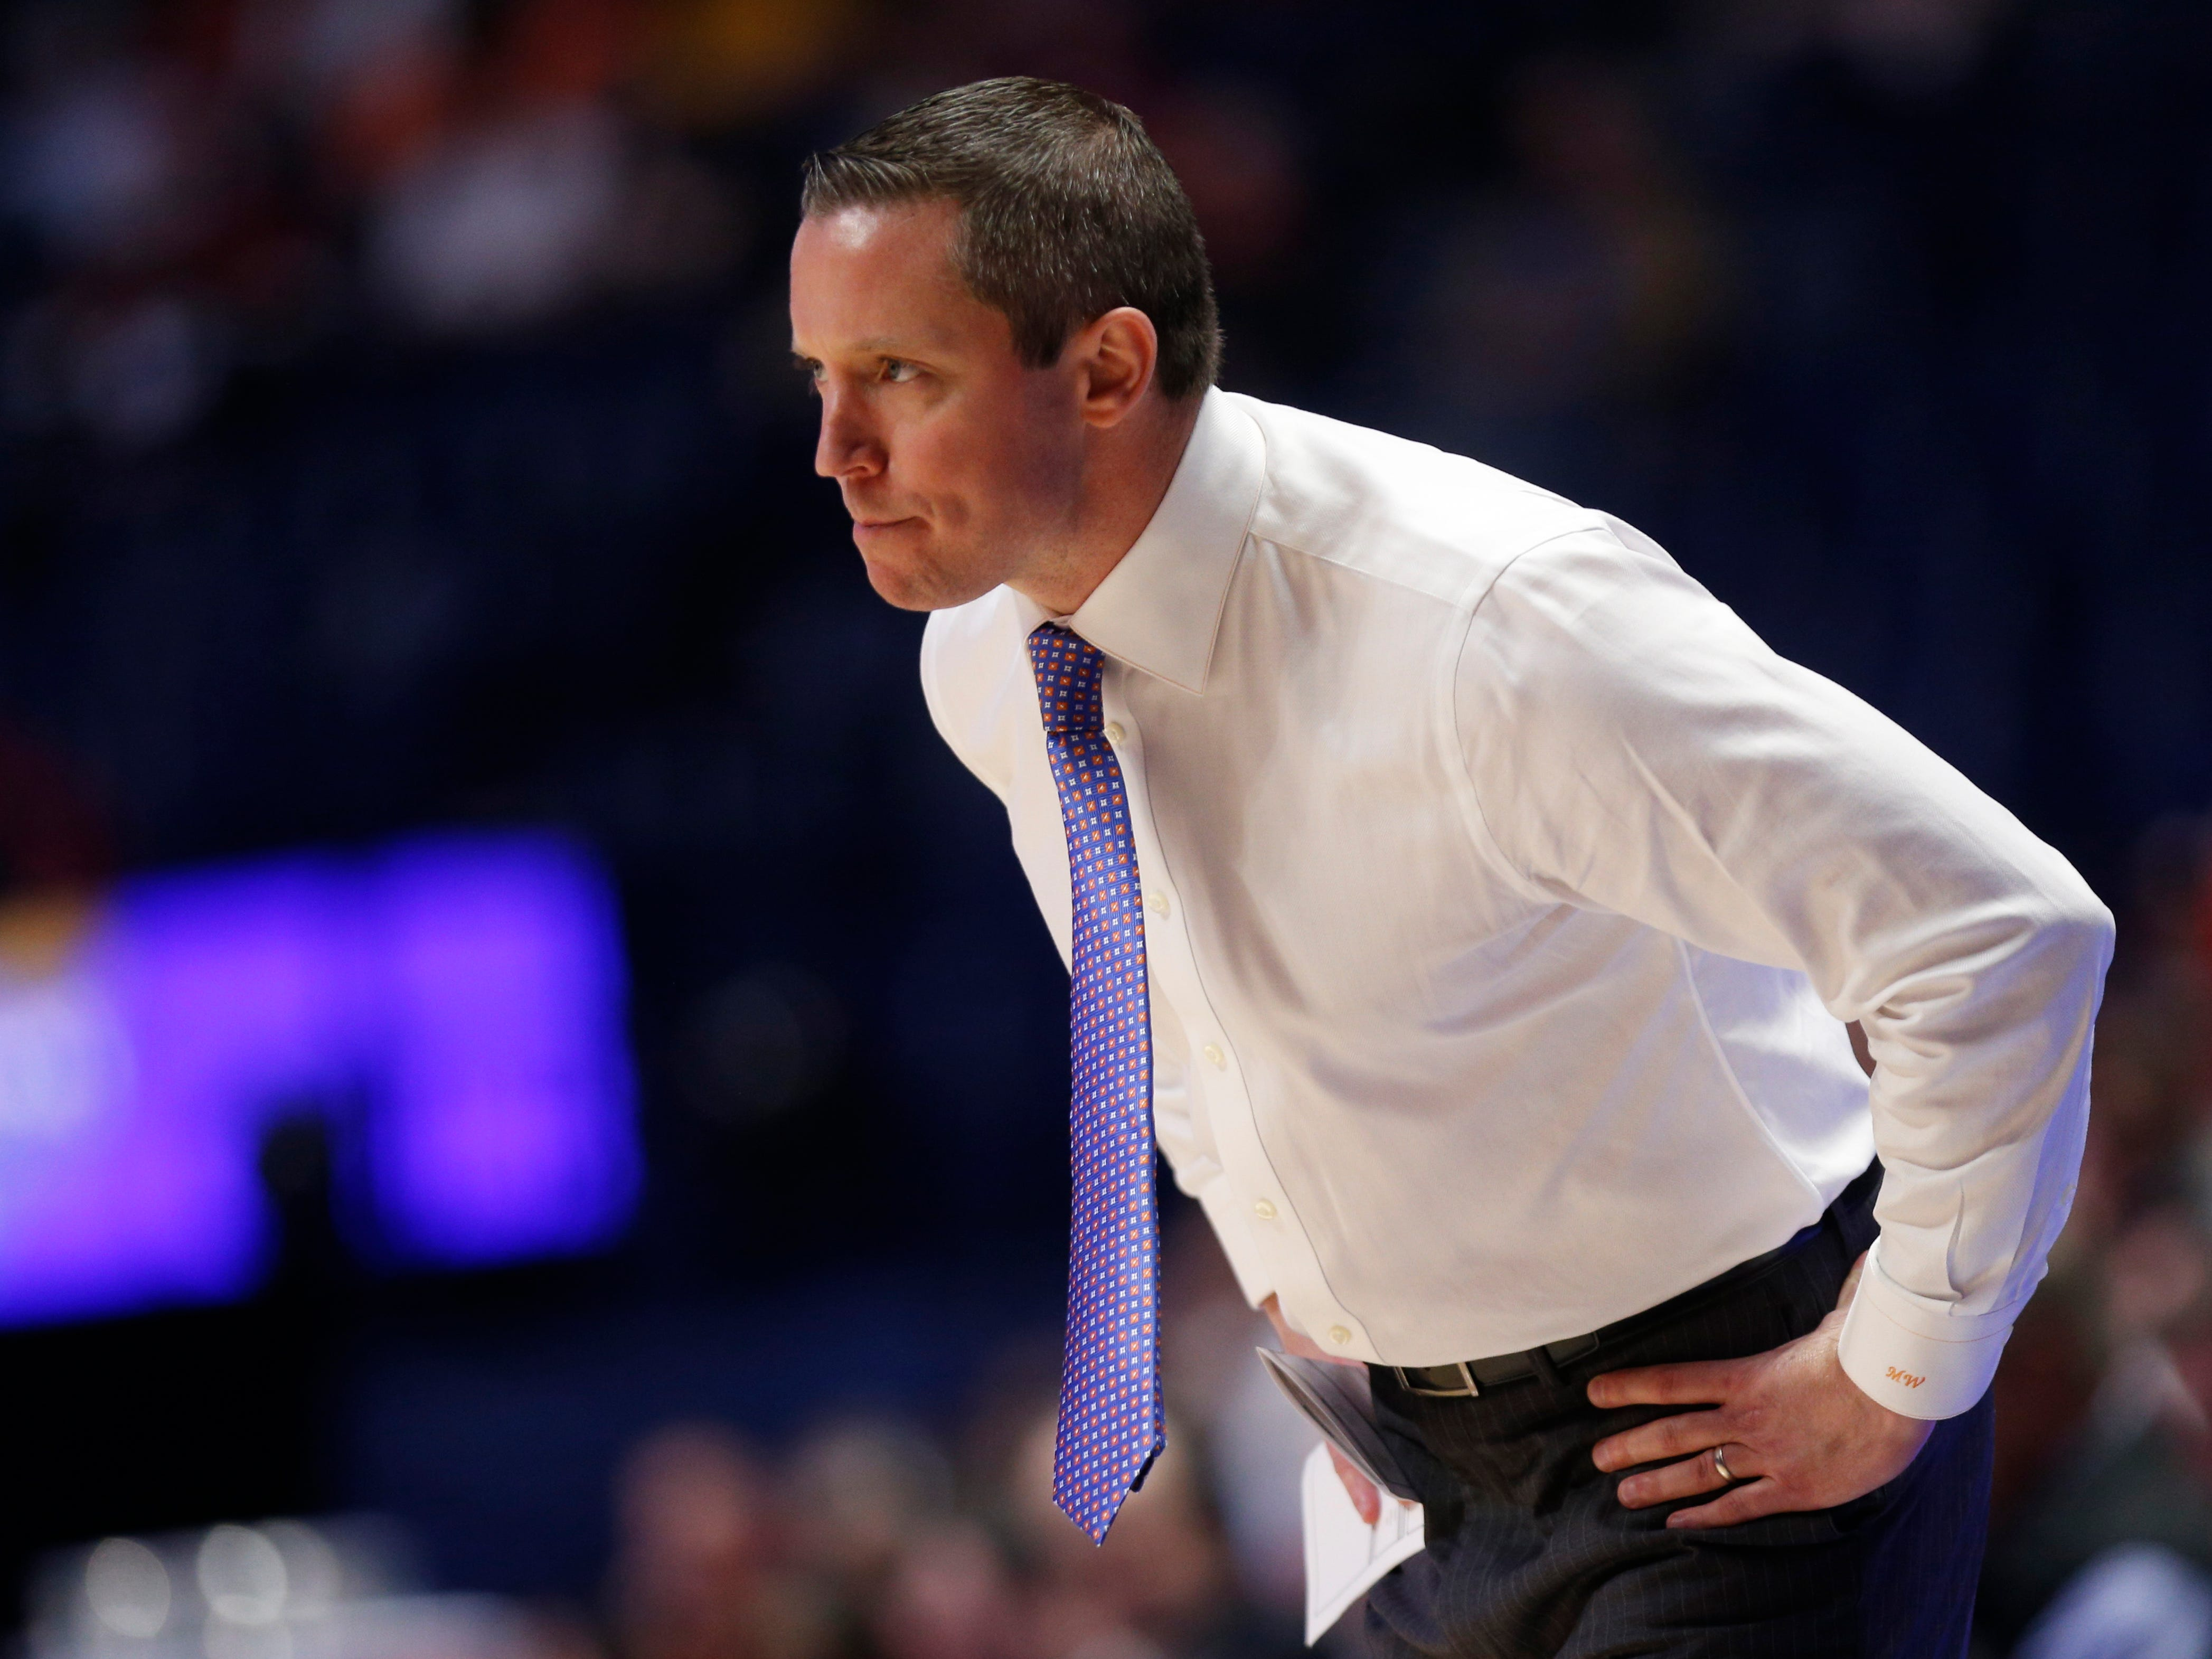 Florida head coach Mike White watches the action in the first half of the SEC Men's Basketball Tournament game at Bridgestone Arena in Nashville, Tenn., Thursday, March 14, 2019.